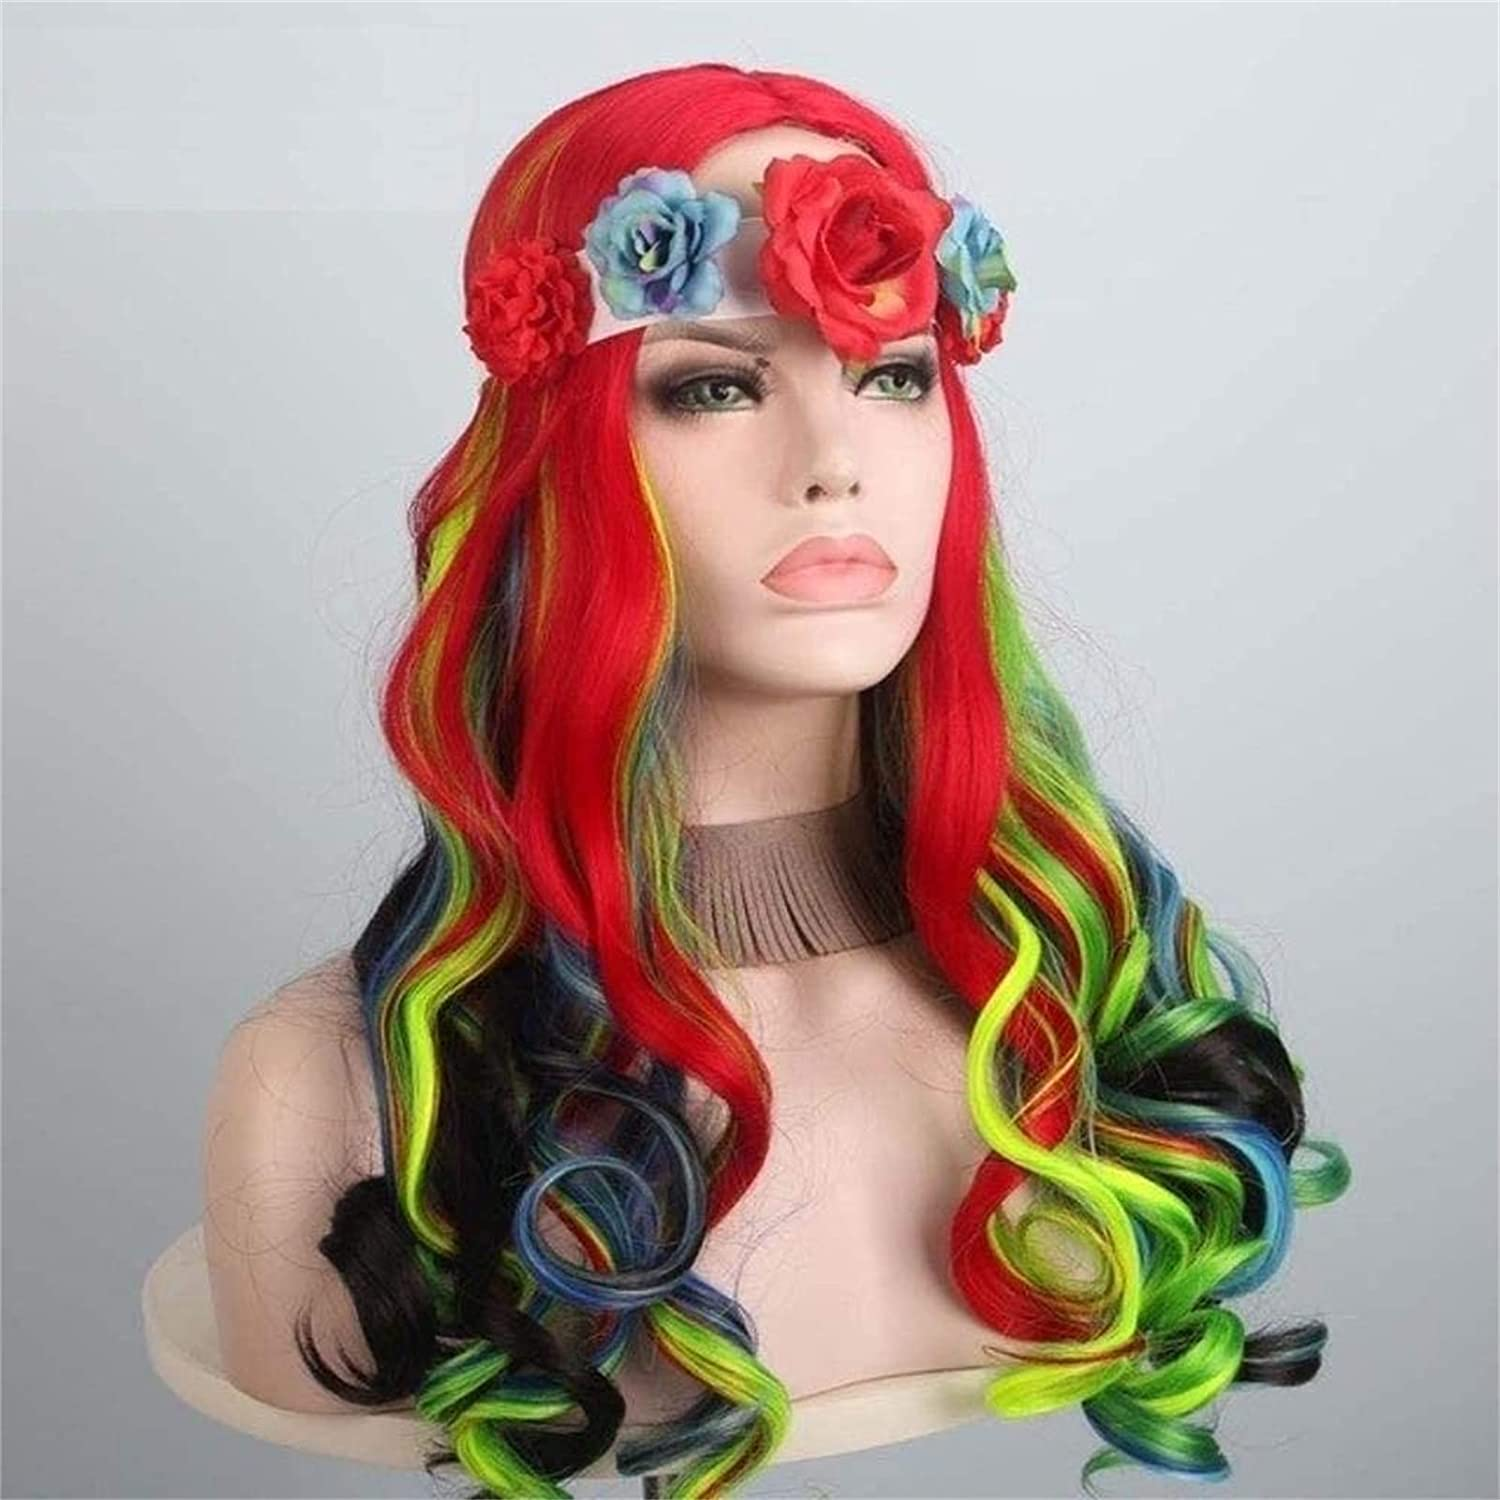 Max Max 56% OFF 60% OFF LCNING Wig Wigs Sweet Long Wavy with Flower Bwokno Colorful